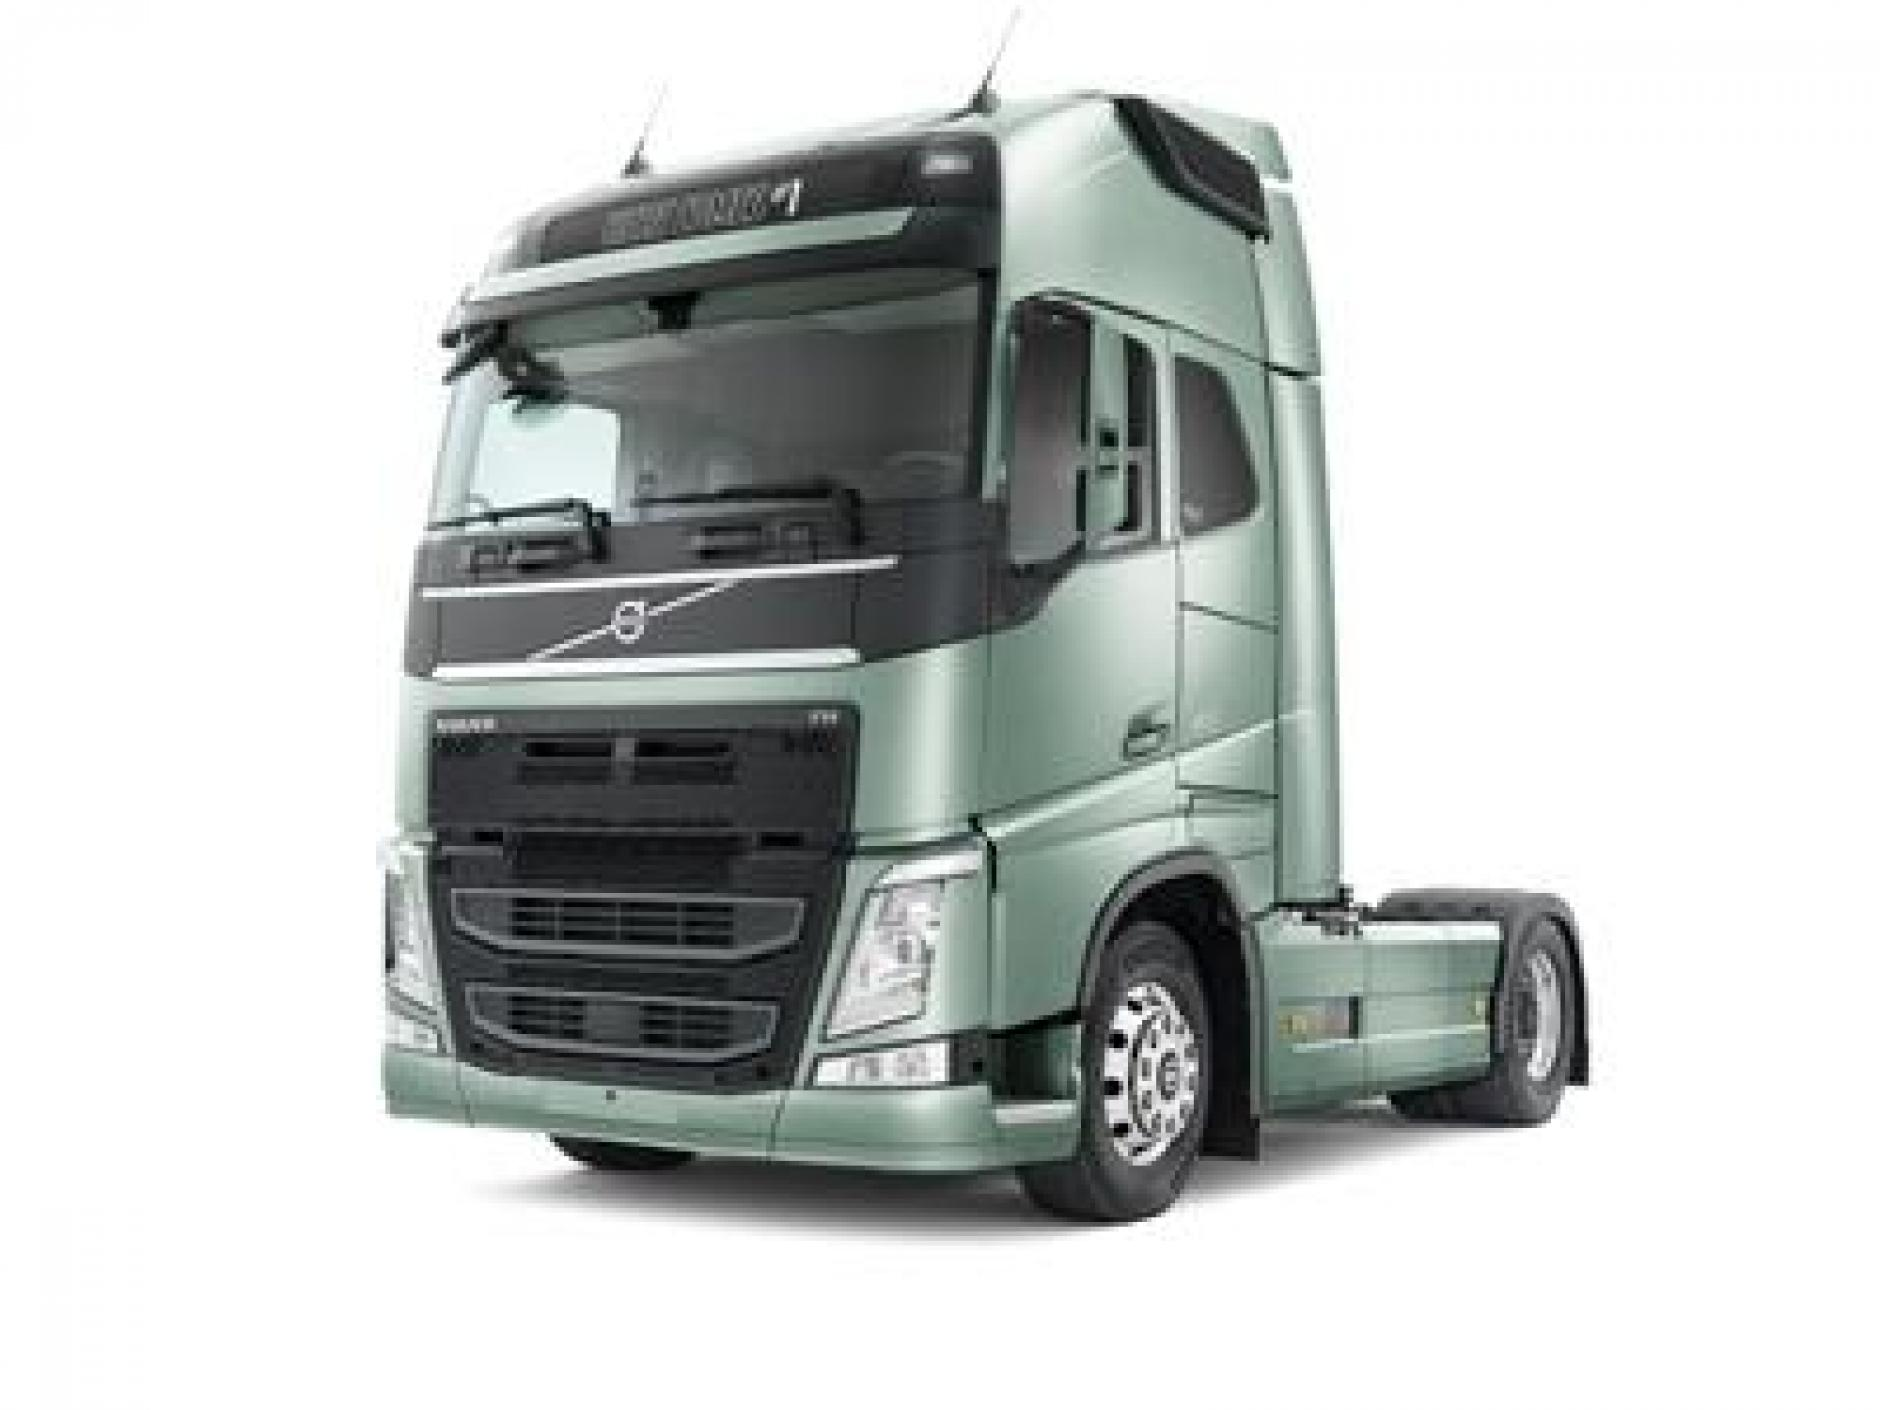 Volvo FH - I-See saves fuel and lowers CO2 | Volvo Trucks